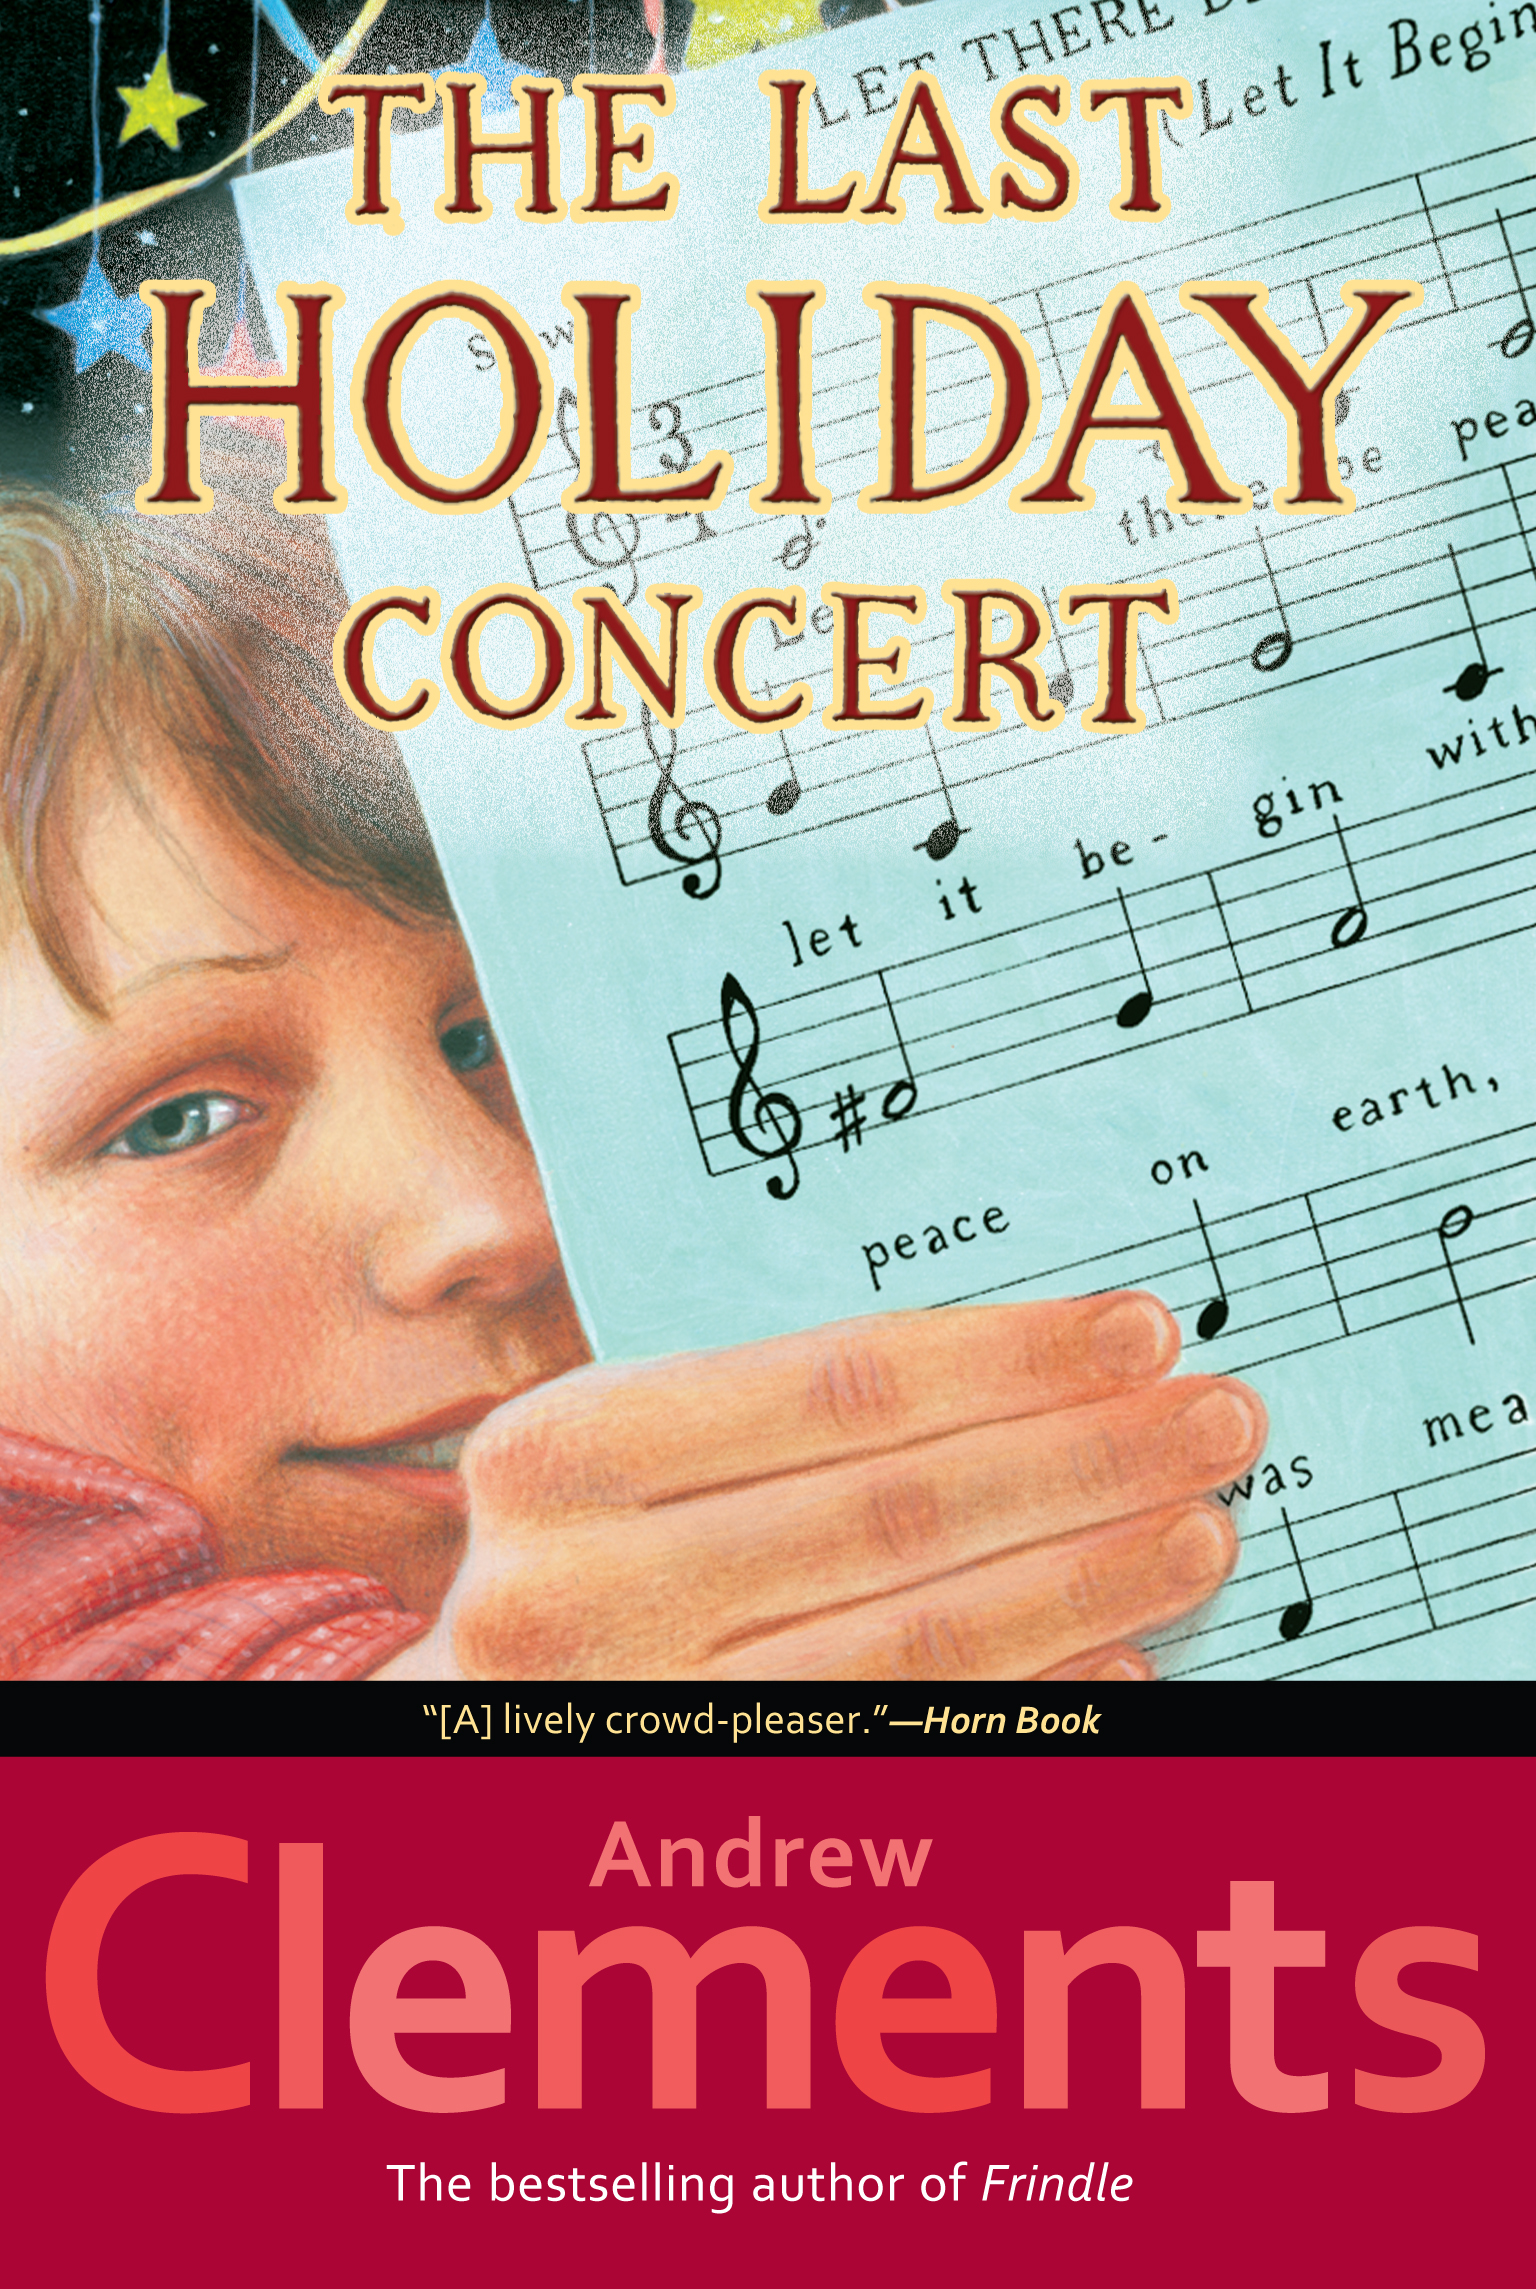 Book Cover Image (jpg): The Last Holiday Concert